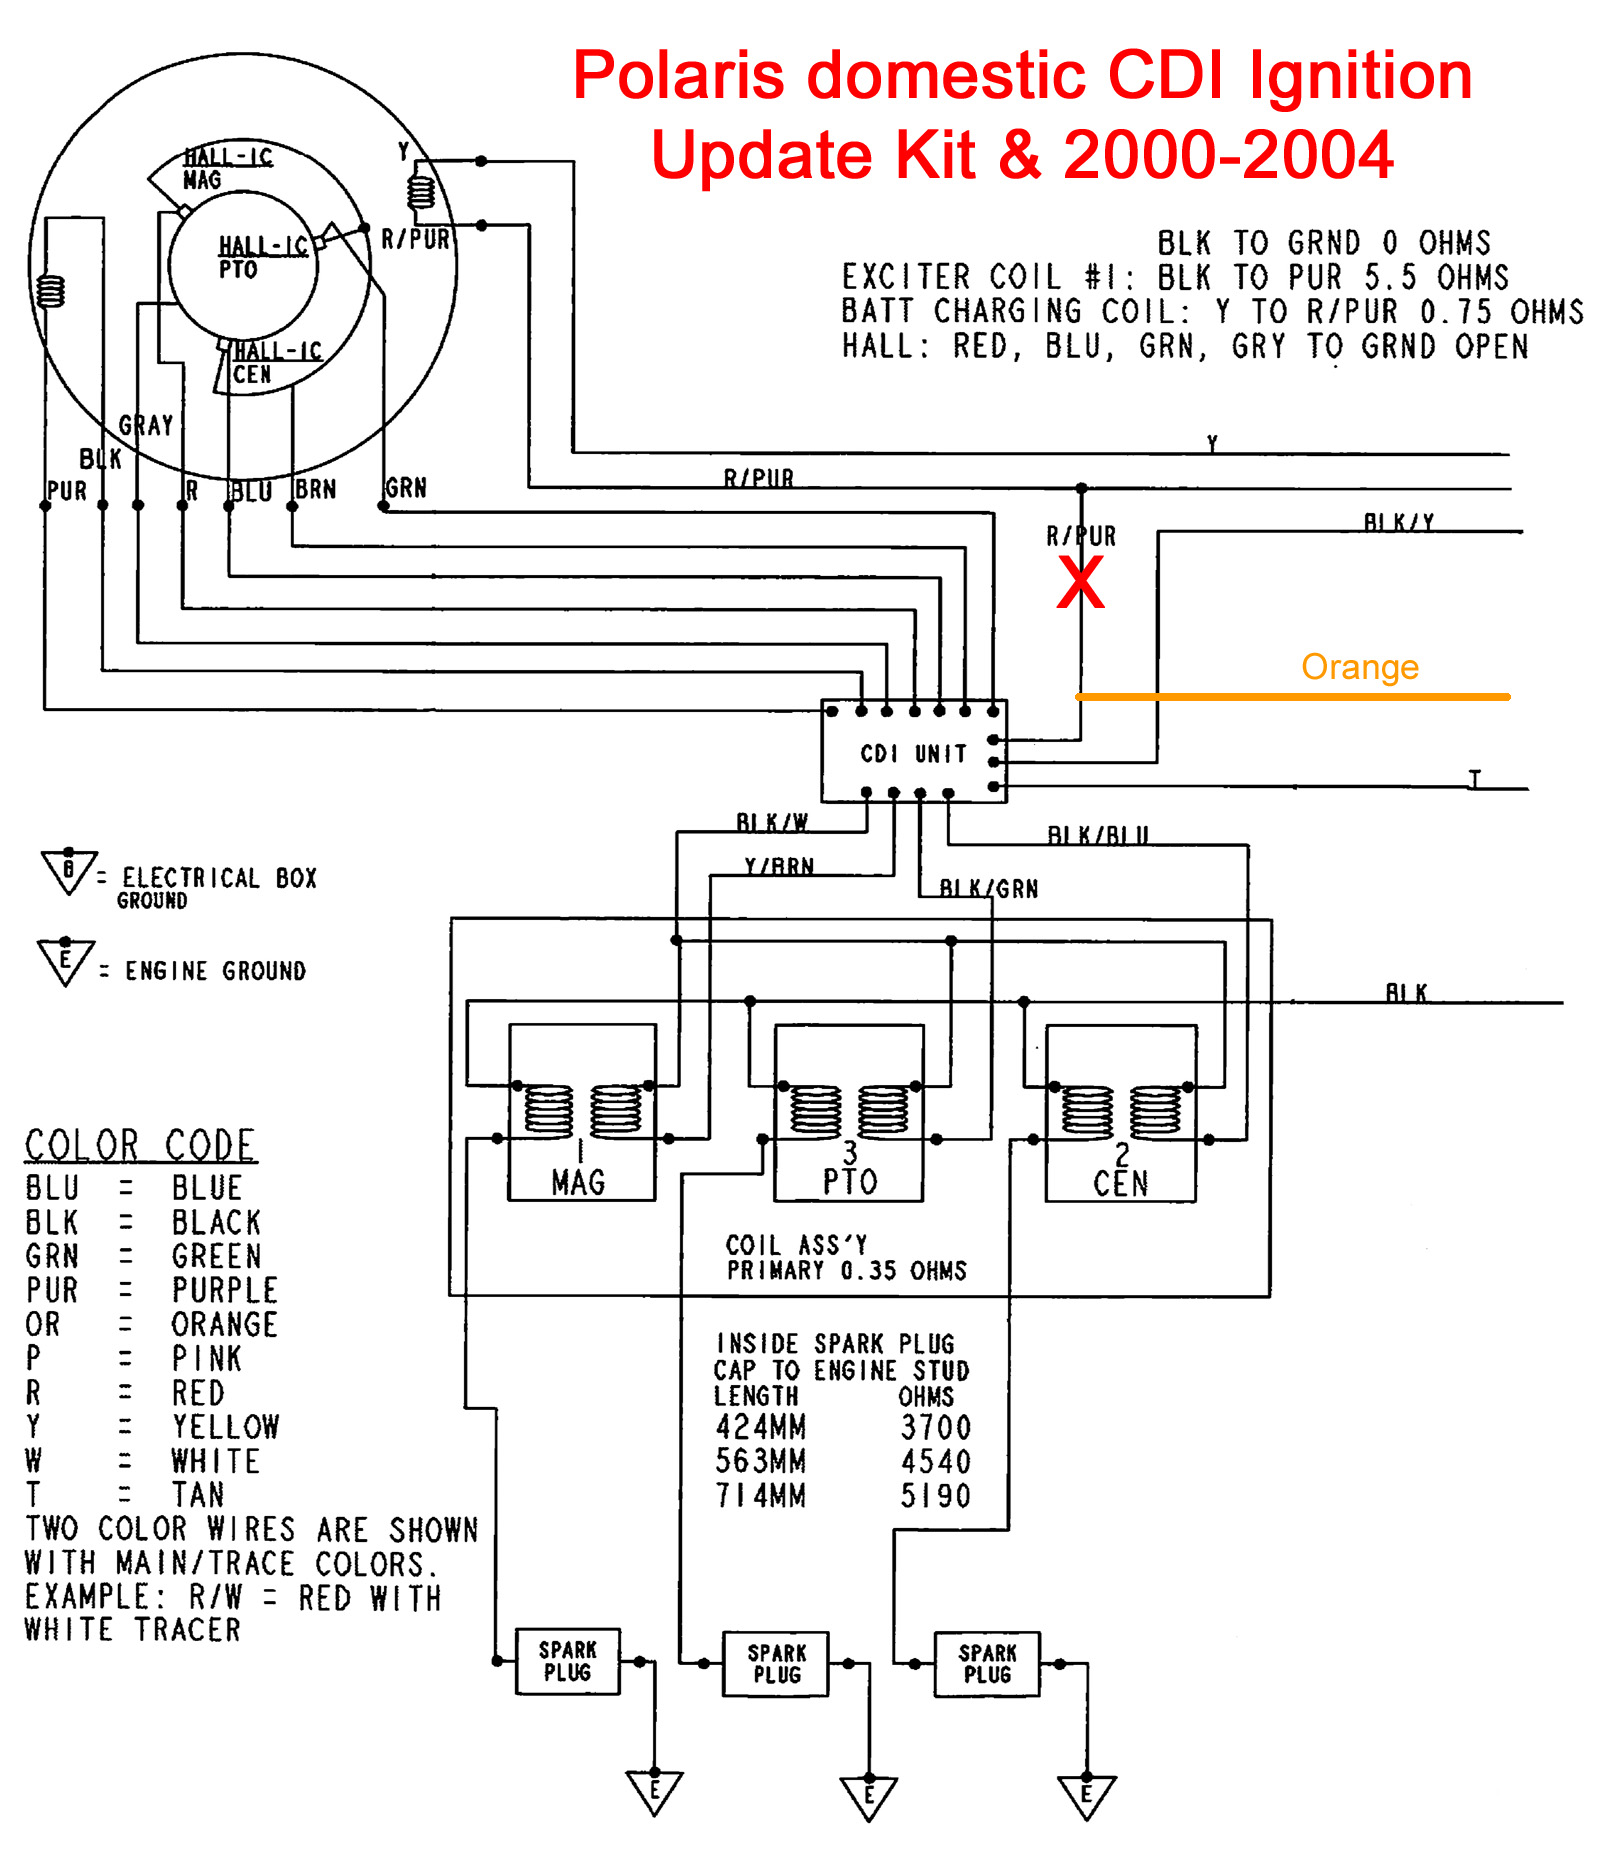 [DIAGRAM_4FR]  How to test CDI, Magneto stator coils & Hall Effect sensors on domestic  engines | 1999 Polaris Indy 700 Wire Diagram |  | Greenhulk